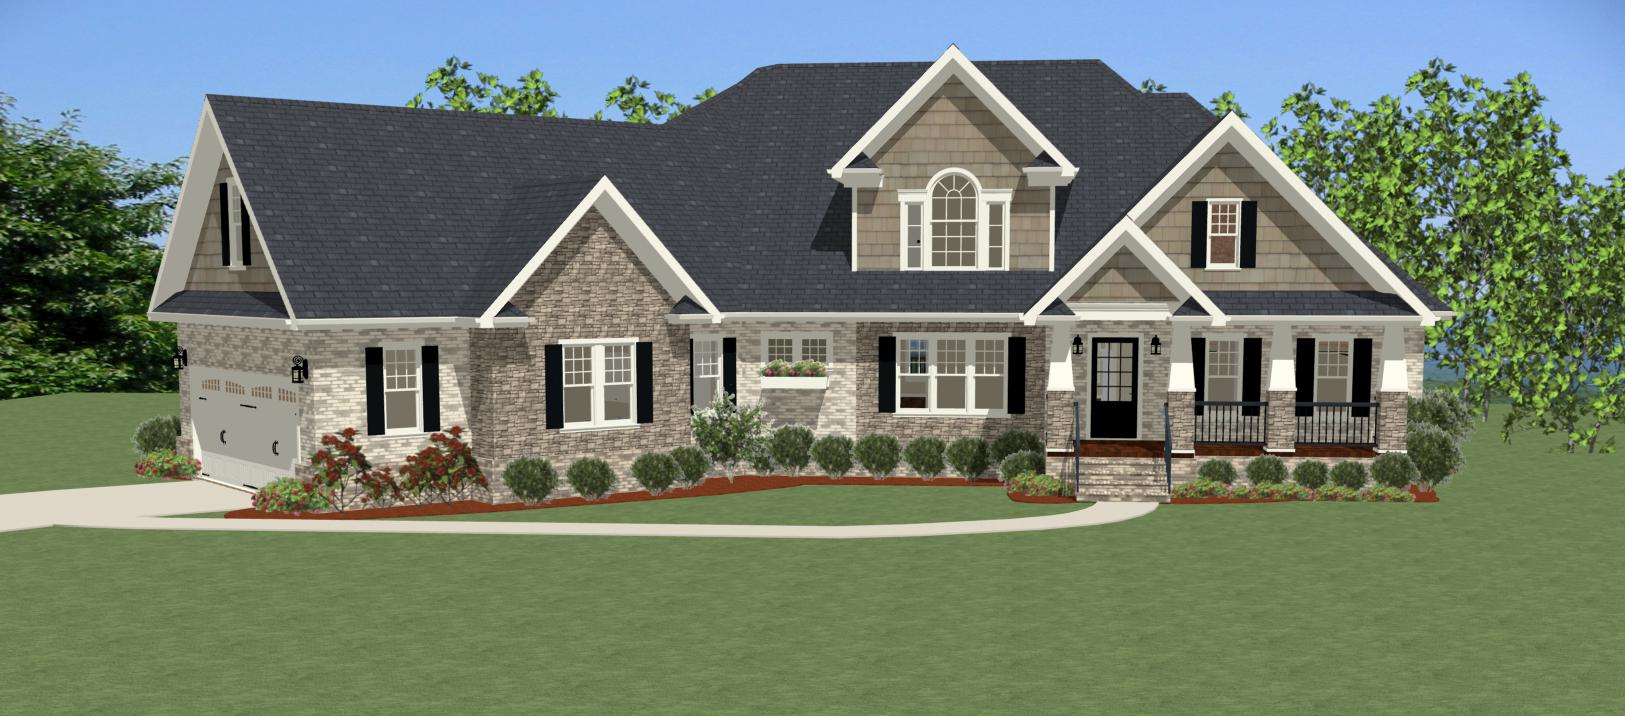 We have a winner introducing the stoney creek house plan for Creek house